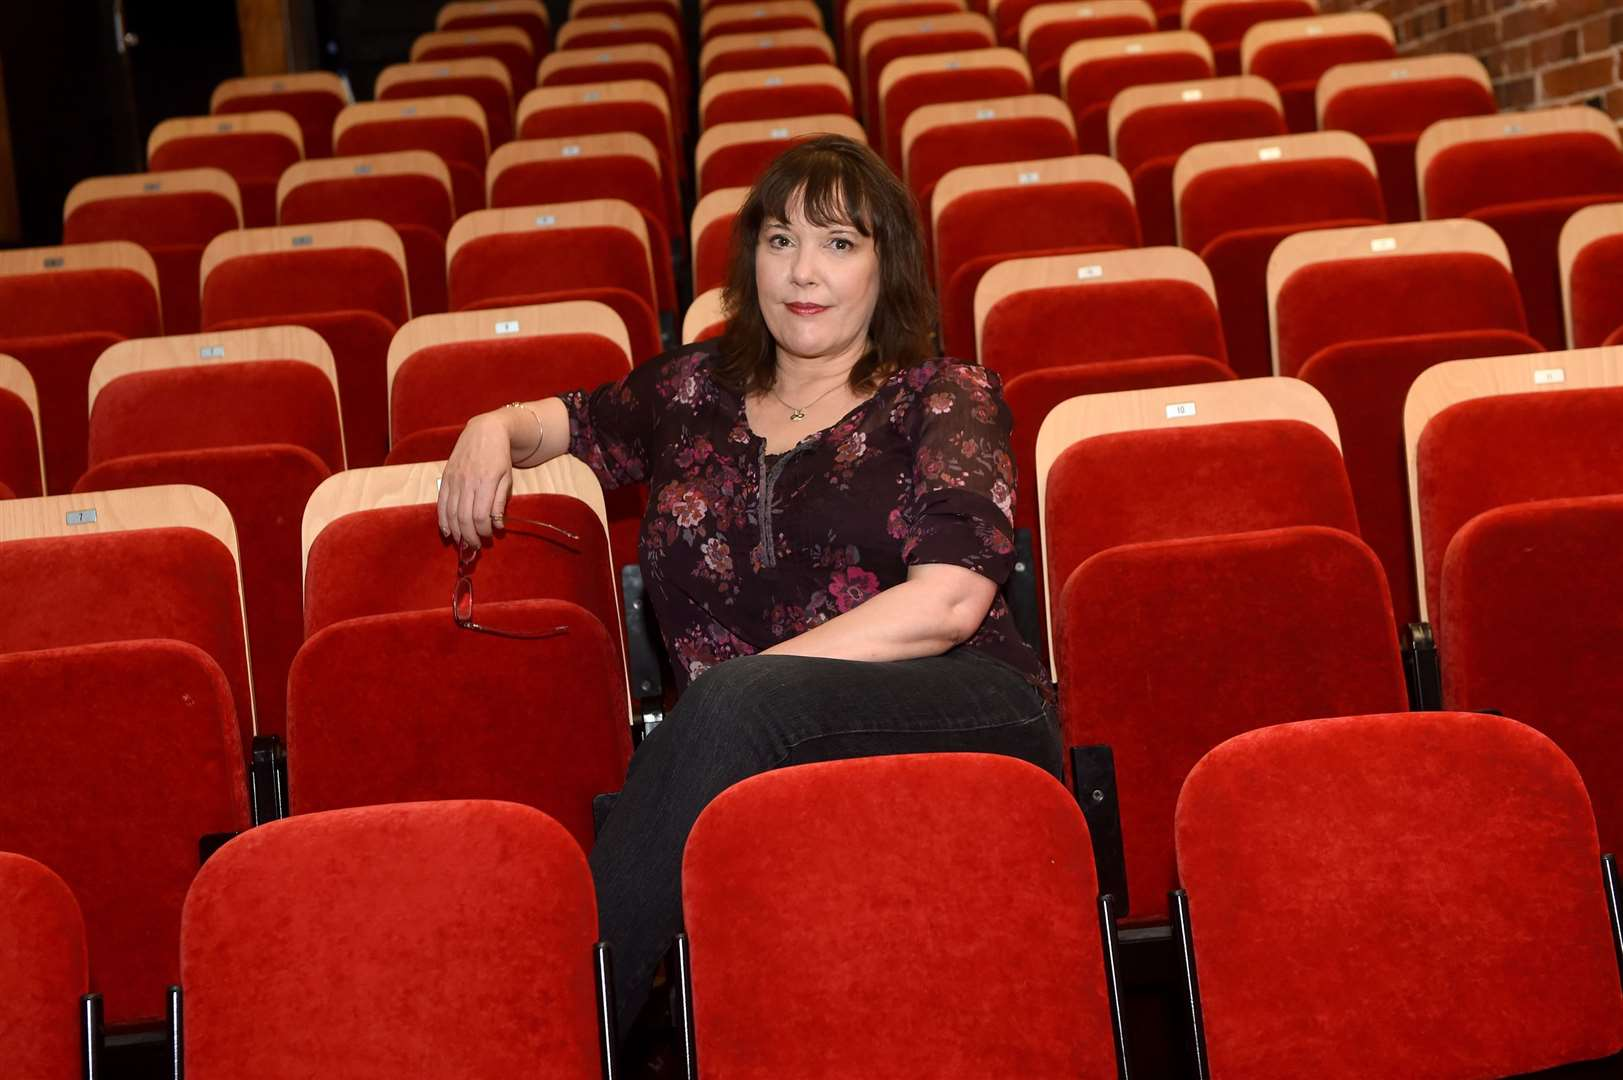 The Sudbury Quay Theatre is launching a new online project, which will enable the public to watch a range of performances and shows, while taking part in a series of virtual events by posting their own videos....Pictured: Manager Sharon Buckler....PICTURE: Mecha Morton .... (36764585)